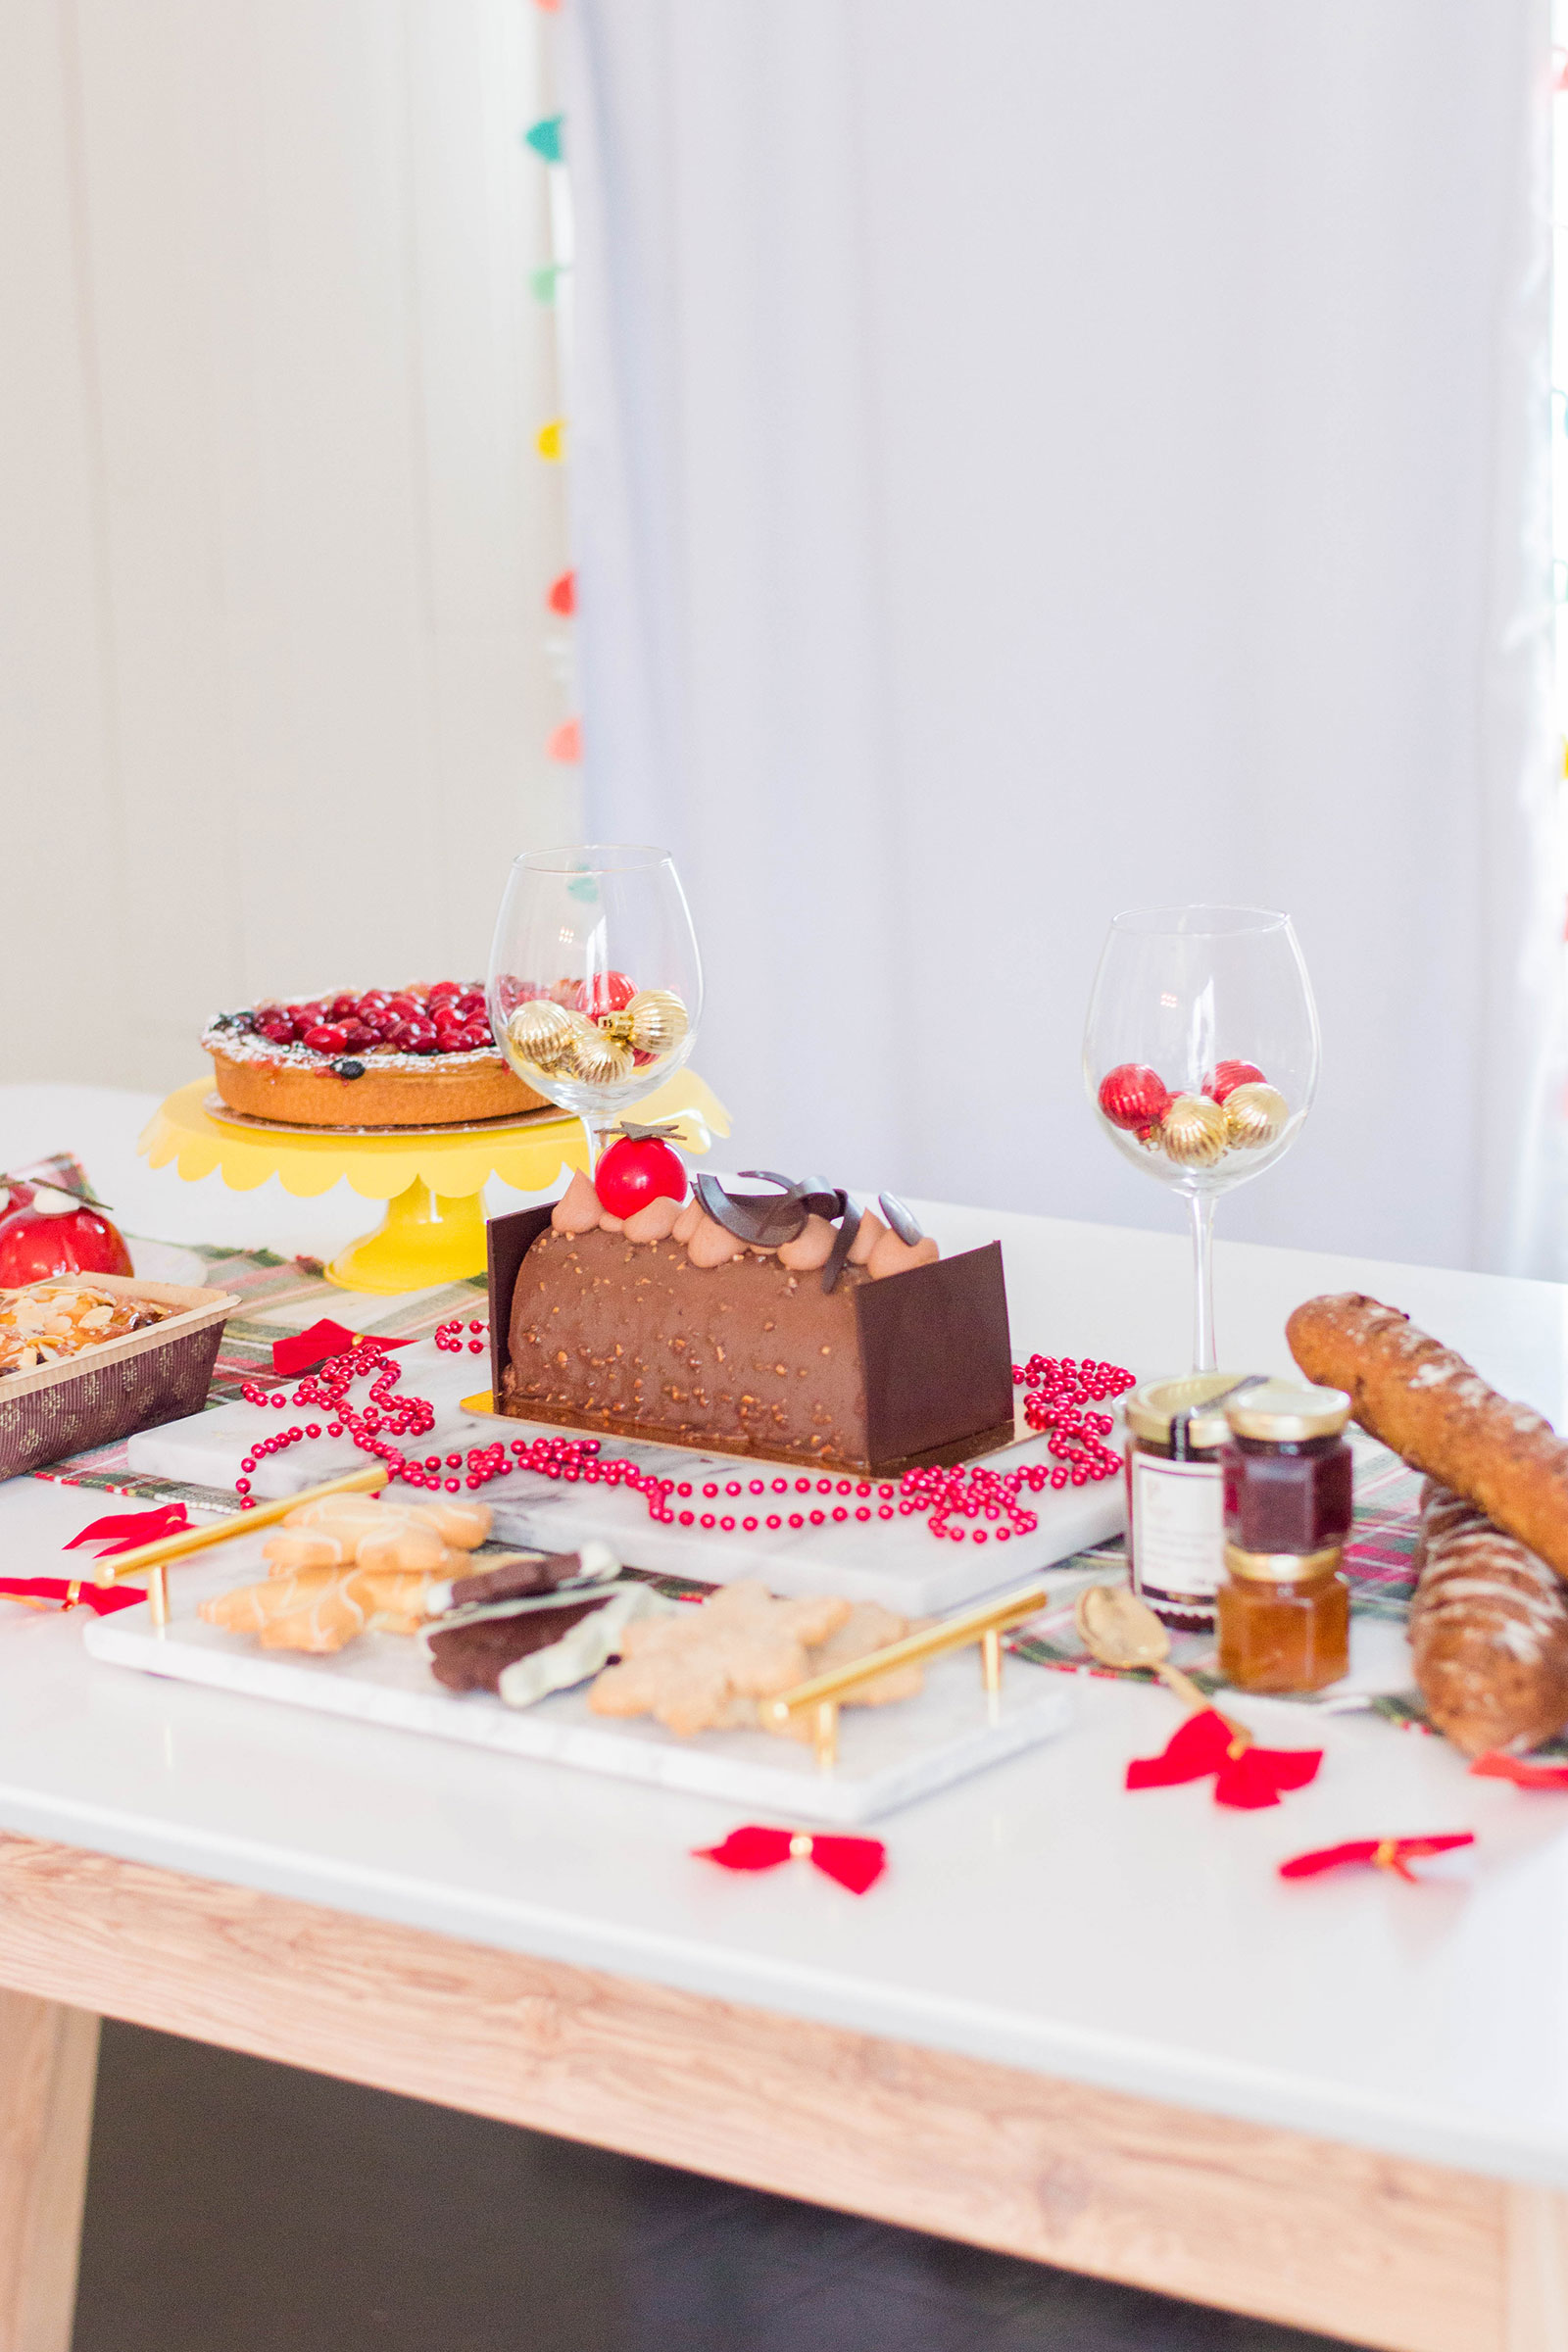 Ready to host for the holidays? Here's how to put together the sweetest Christmas dessert table. #christmasdesserts